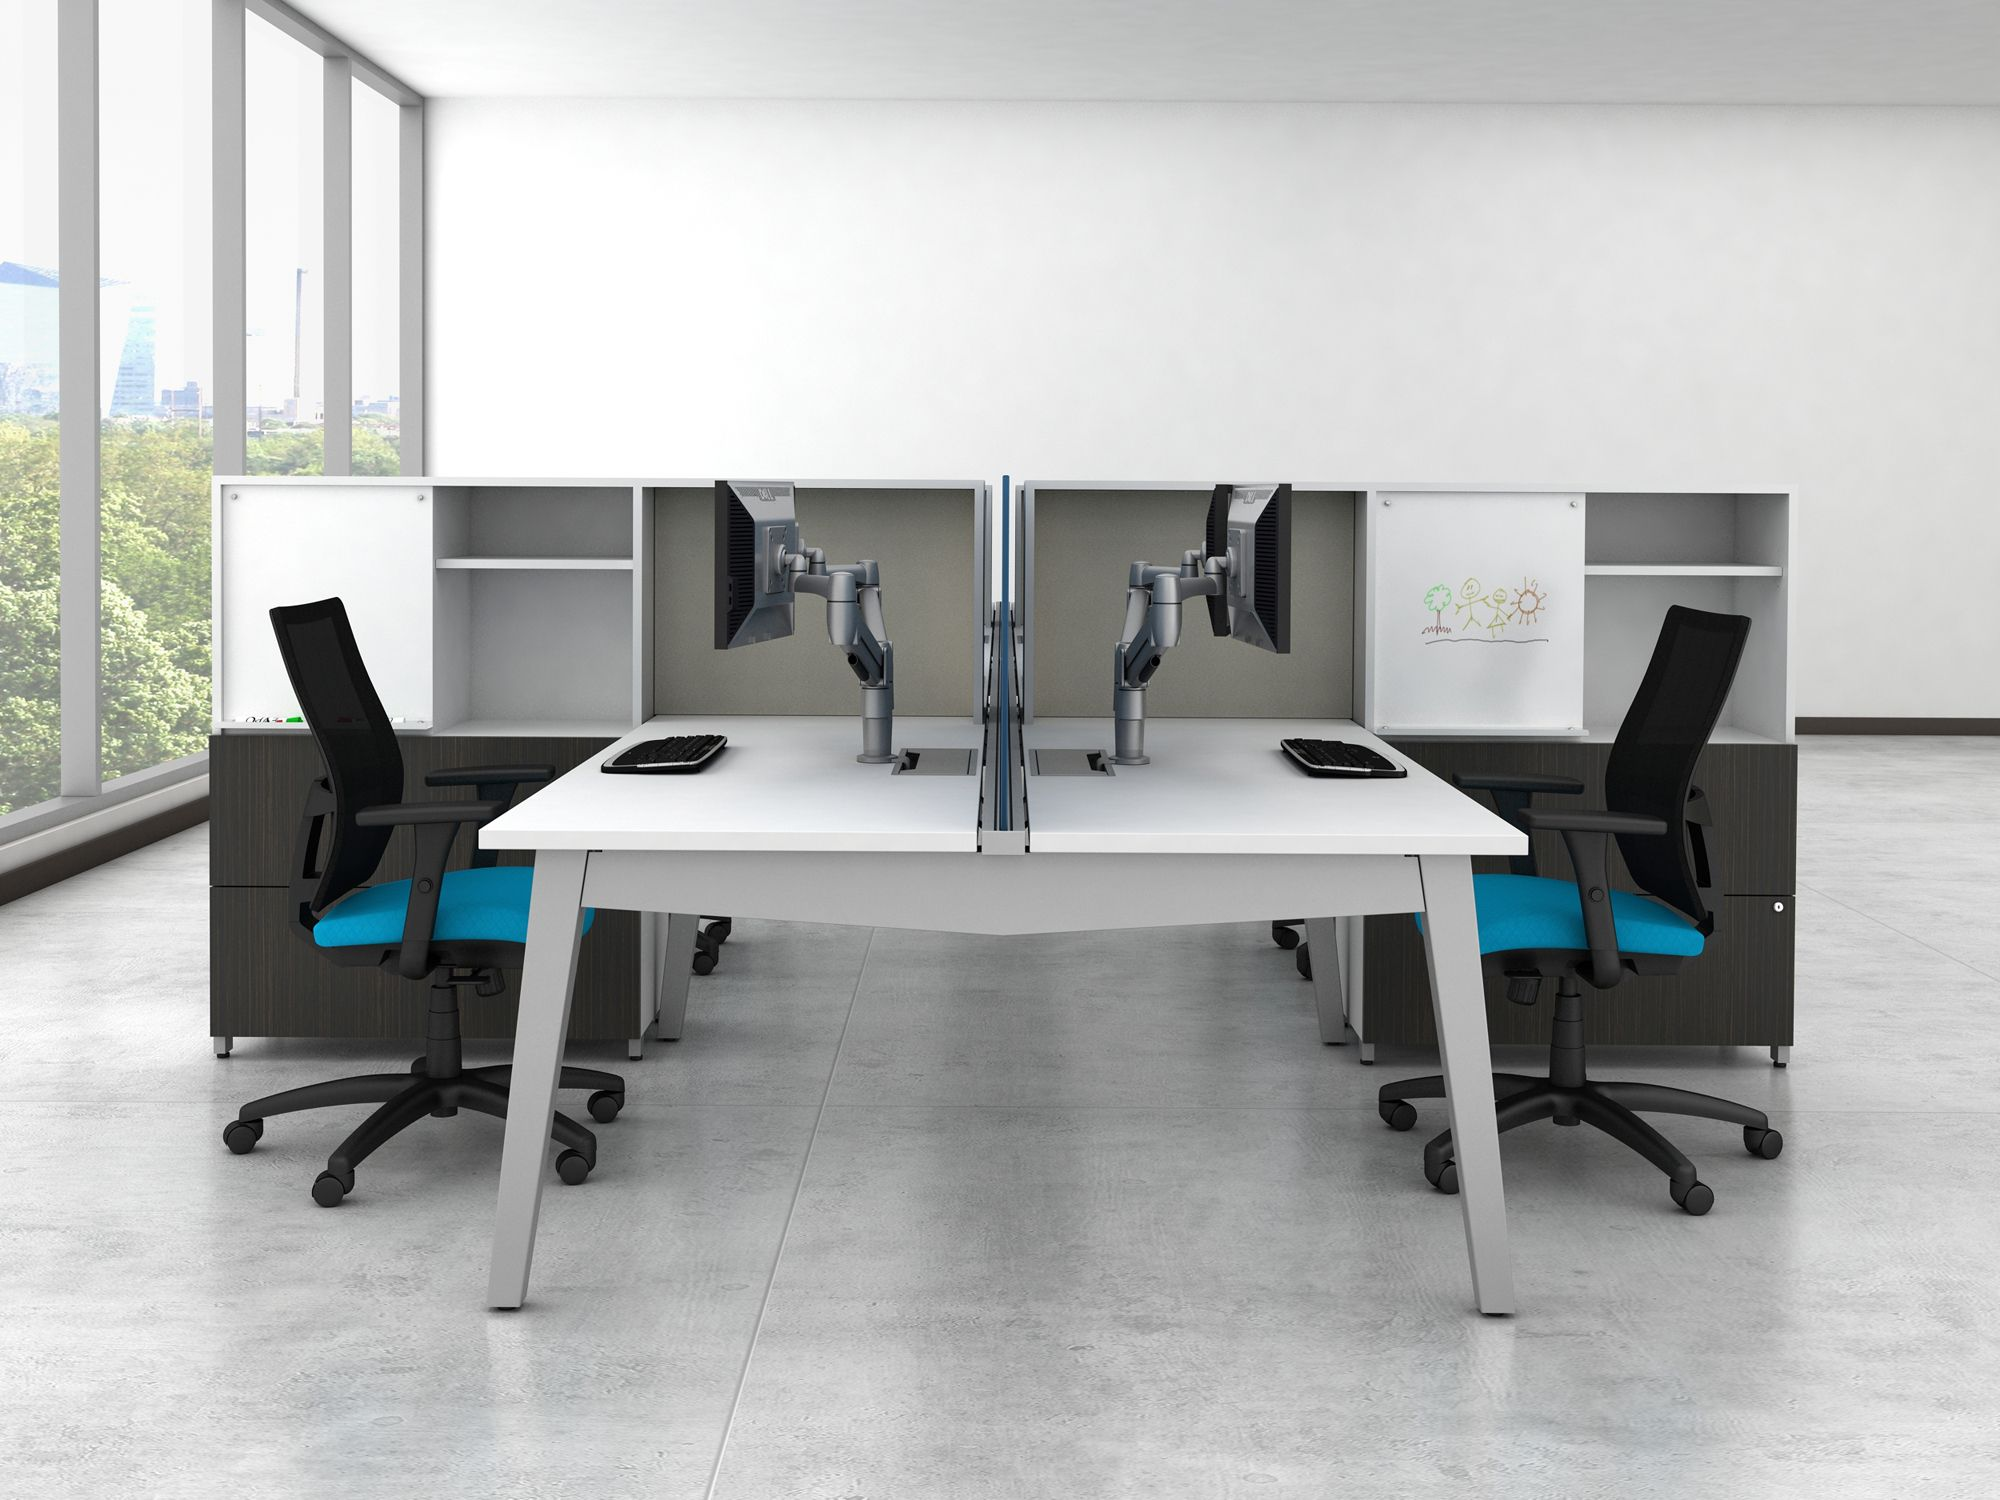 Awesome ... Furniture Systems By AIS! Accomplish This With Under The Desk Power And  Cables, Along With Easy To Access Tabletop Outlets. Create A Sleek  Impression To ...